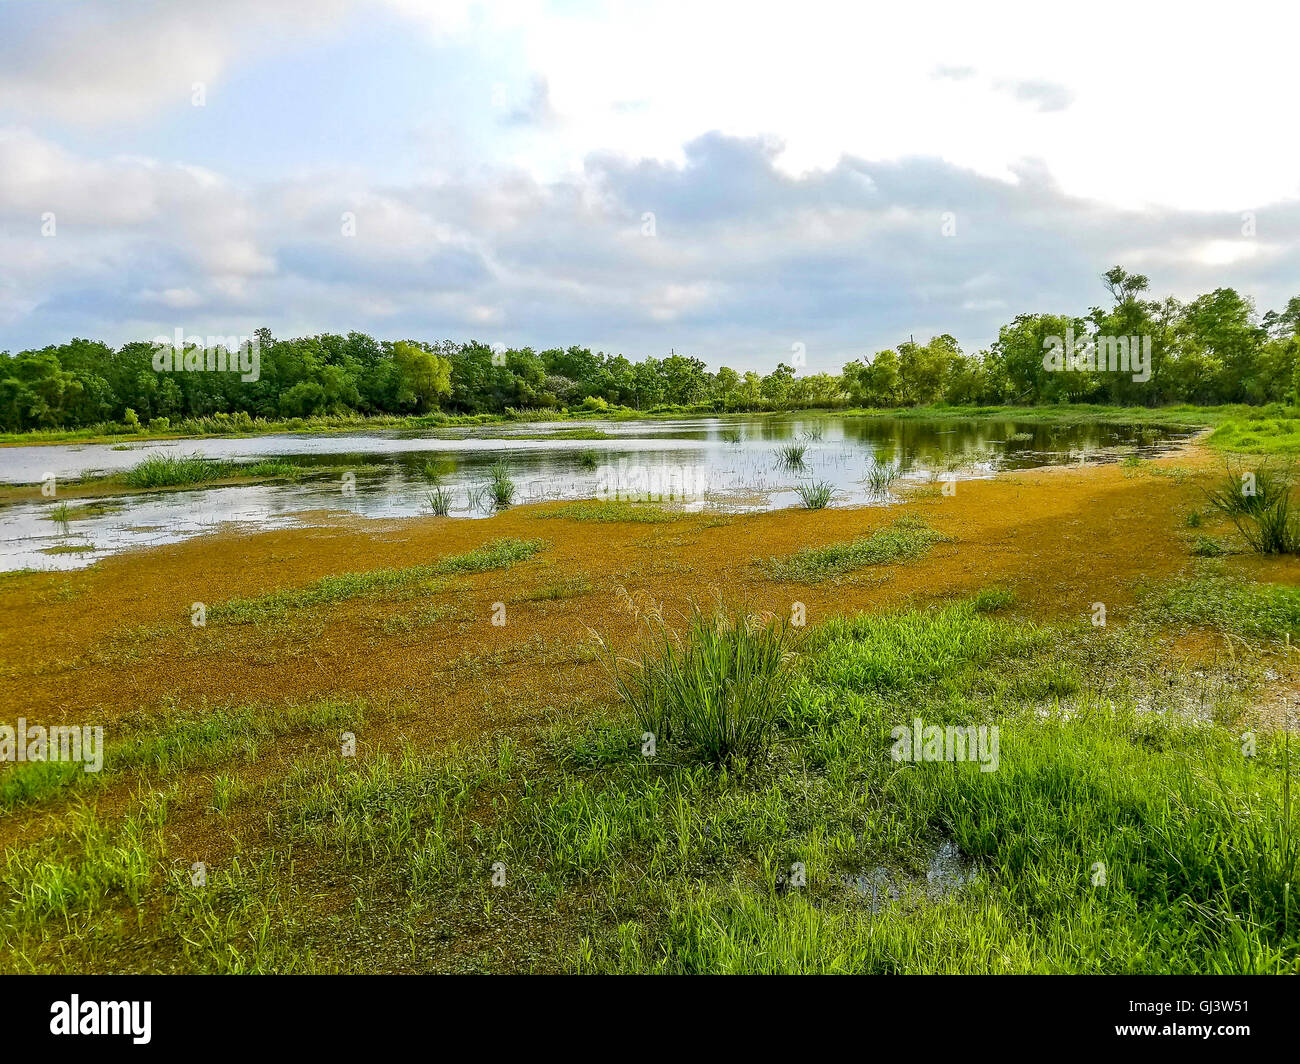 View from Cameron Prairie National Wildlife Refuge center boardwalk. Great place to see birds. Louisiana. - Stock Image